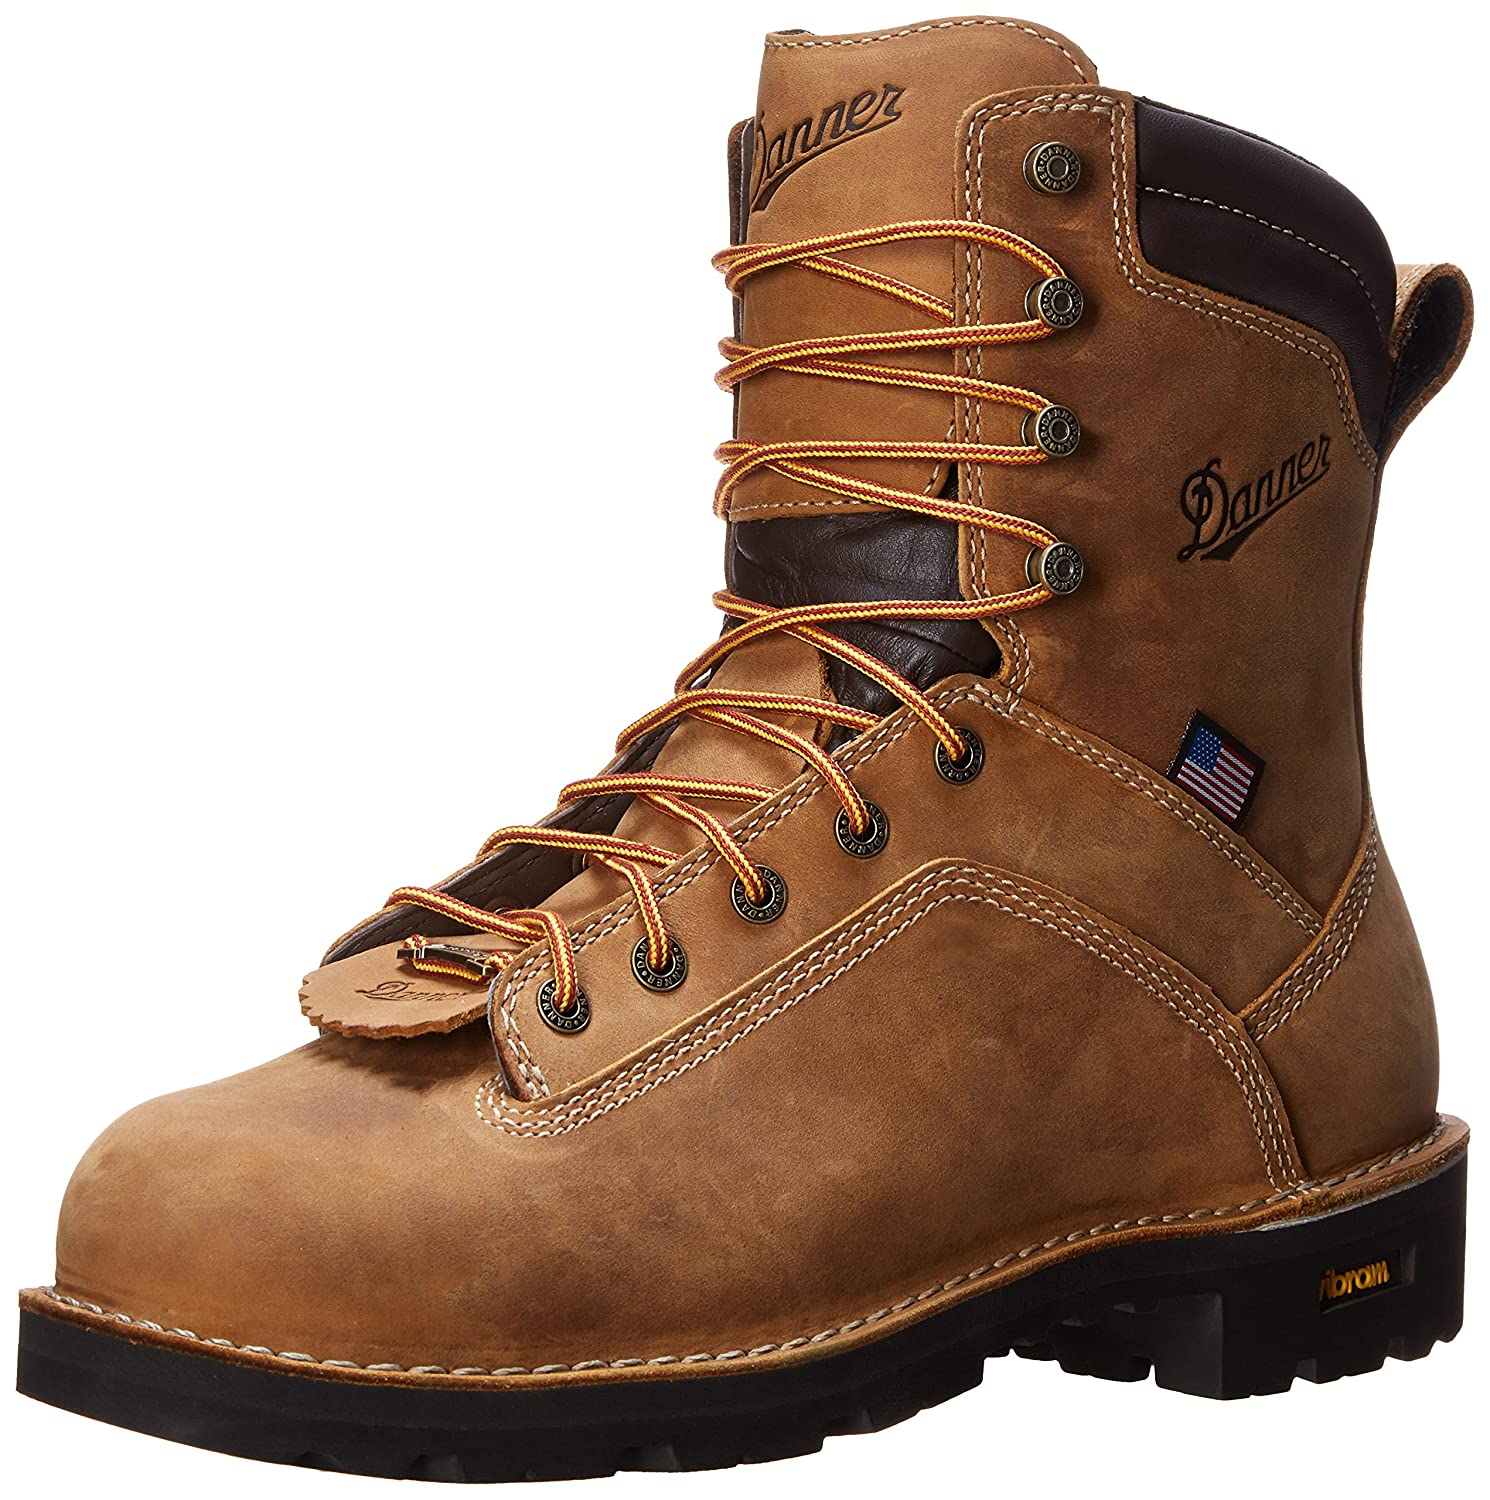 Danner Steel Toe Boots Cr Boot